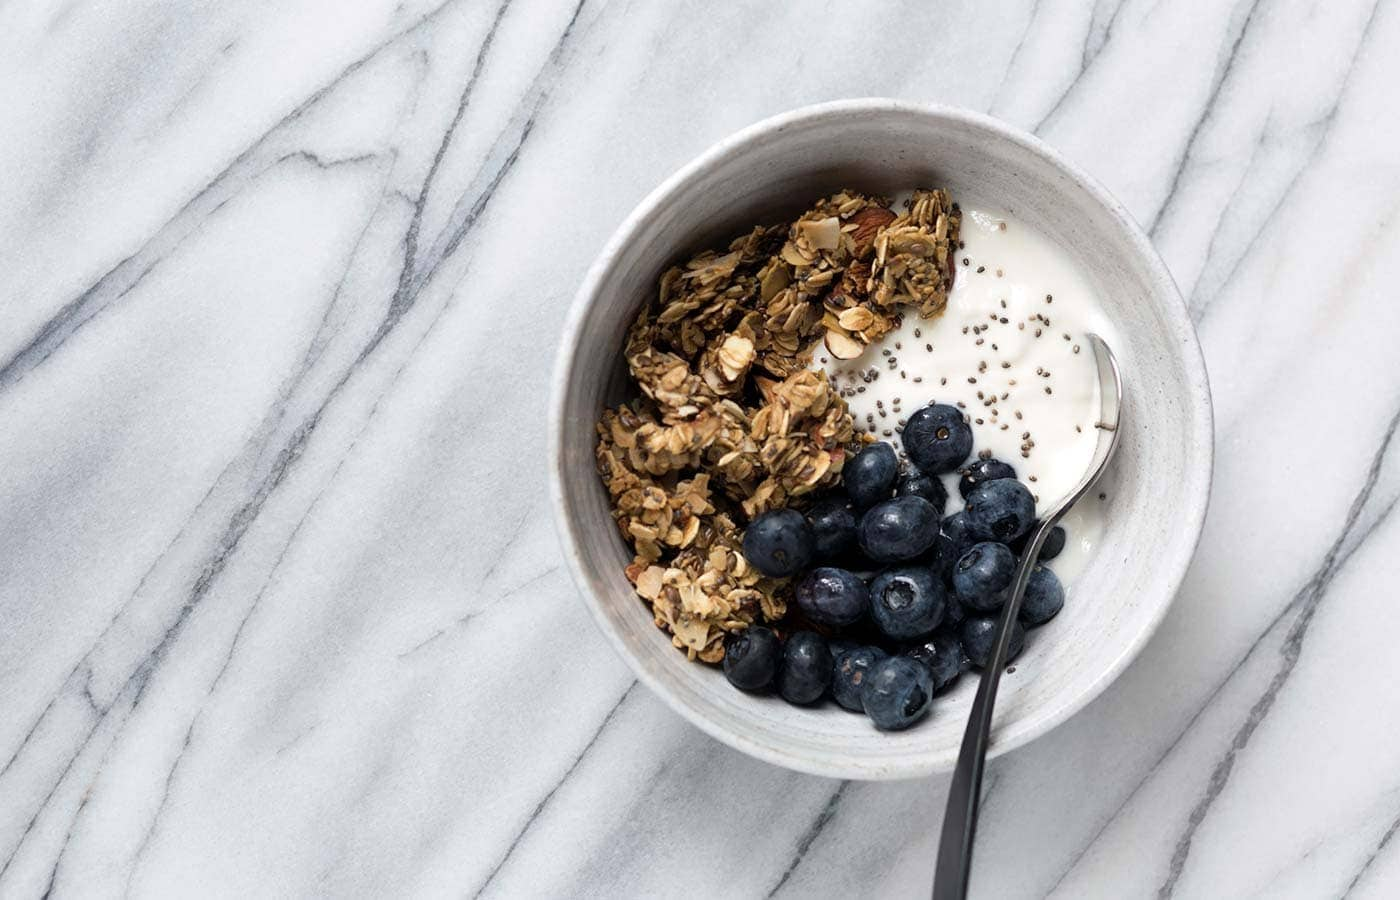 This Granola Yogurt Breakfast Bowl features an easy homemade granola that can be prepared in advanced for weeks worth of quick, delicious, healthy breakfasts. SavorySimple.net